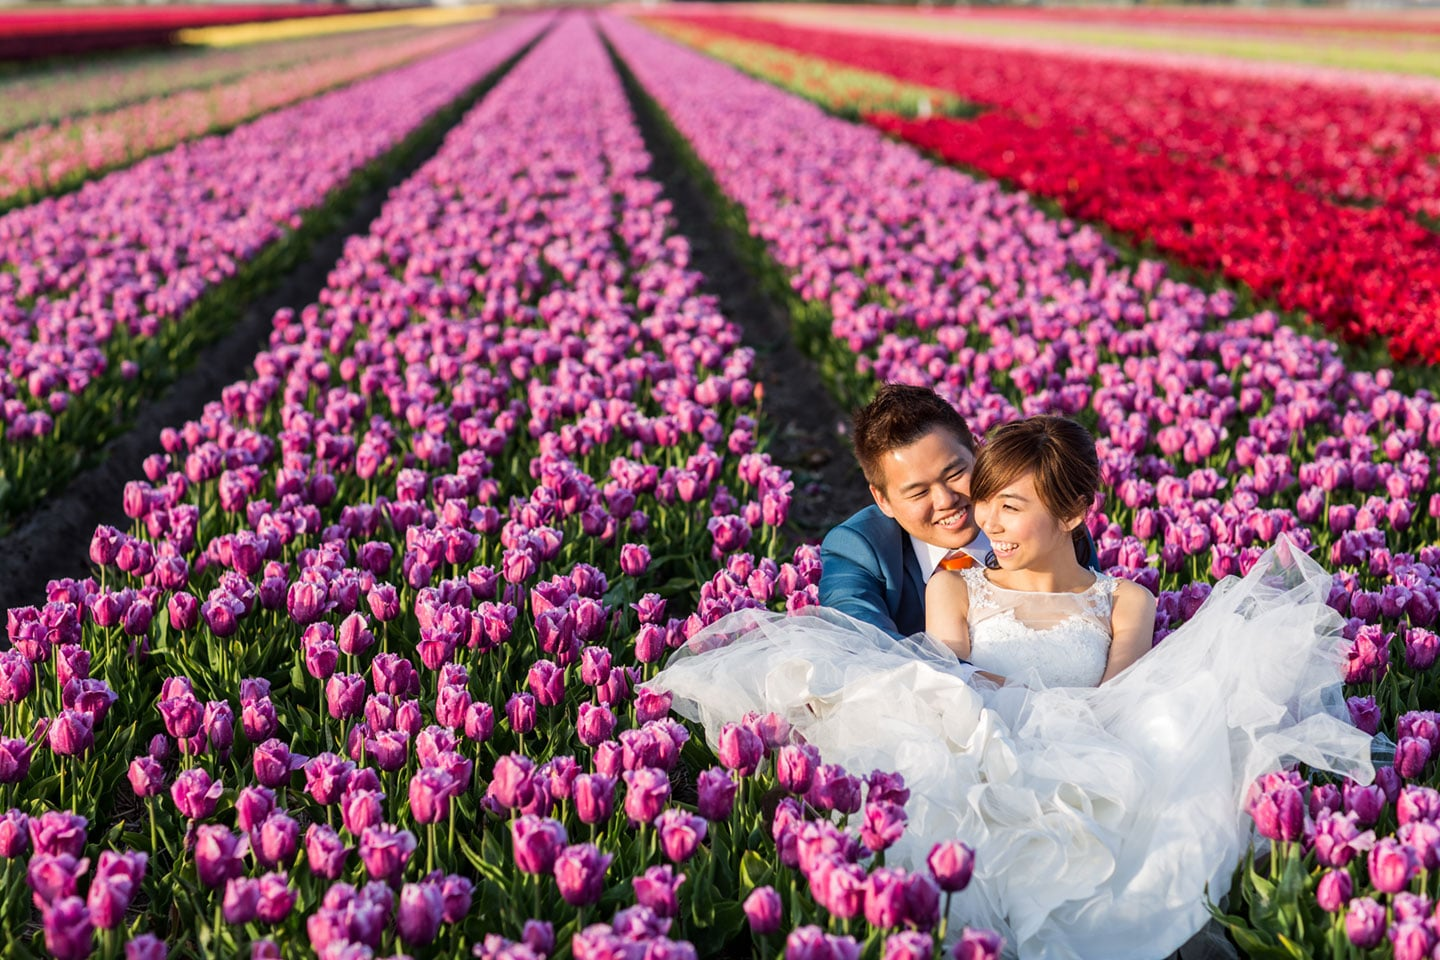 28-pre-wedding-photoshoot-tulips-Keukenhof